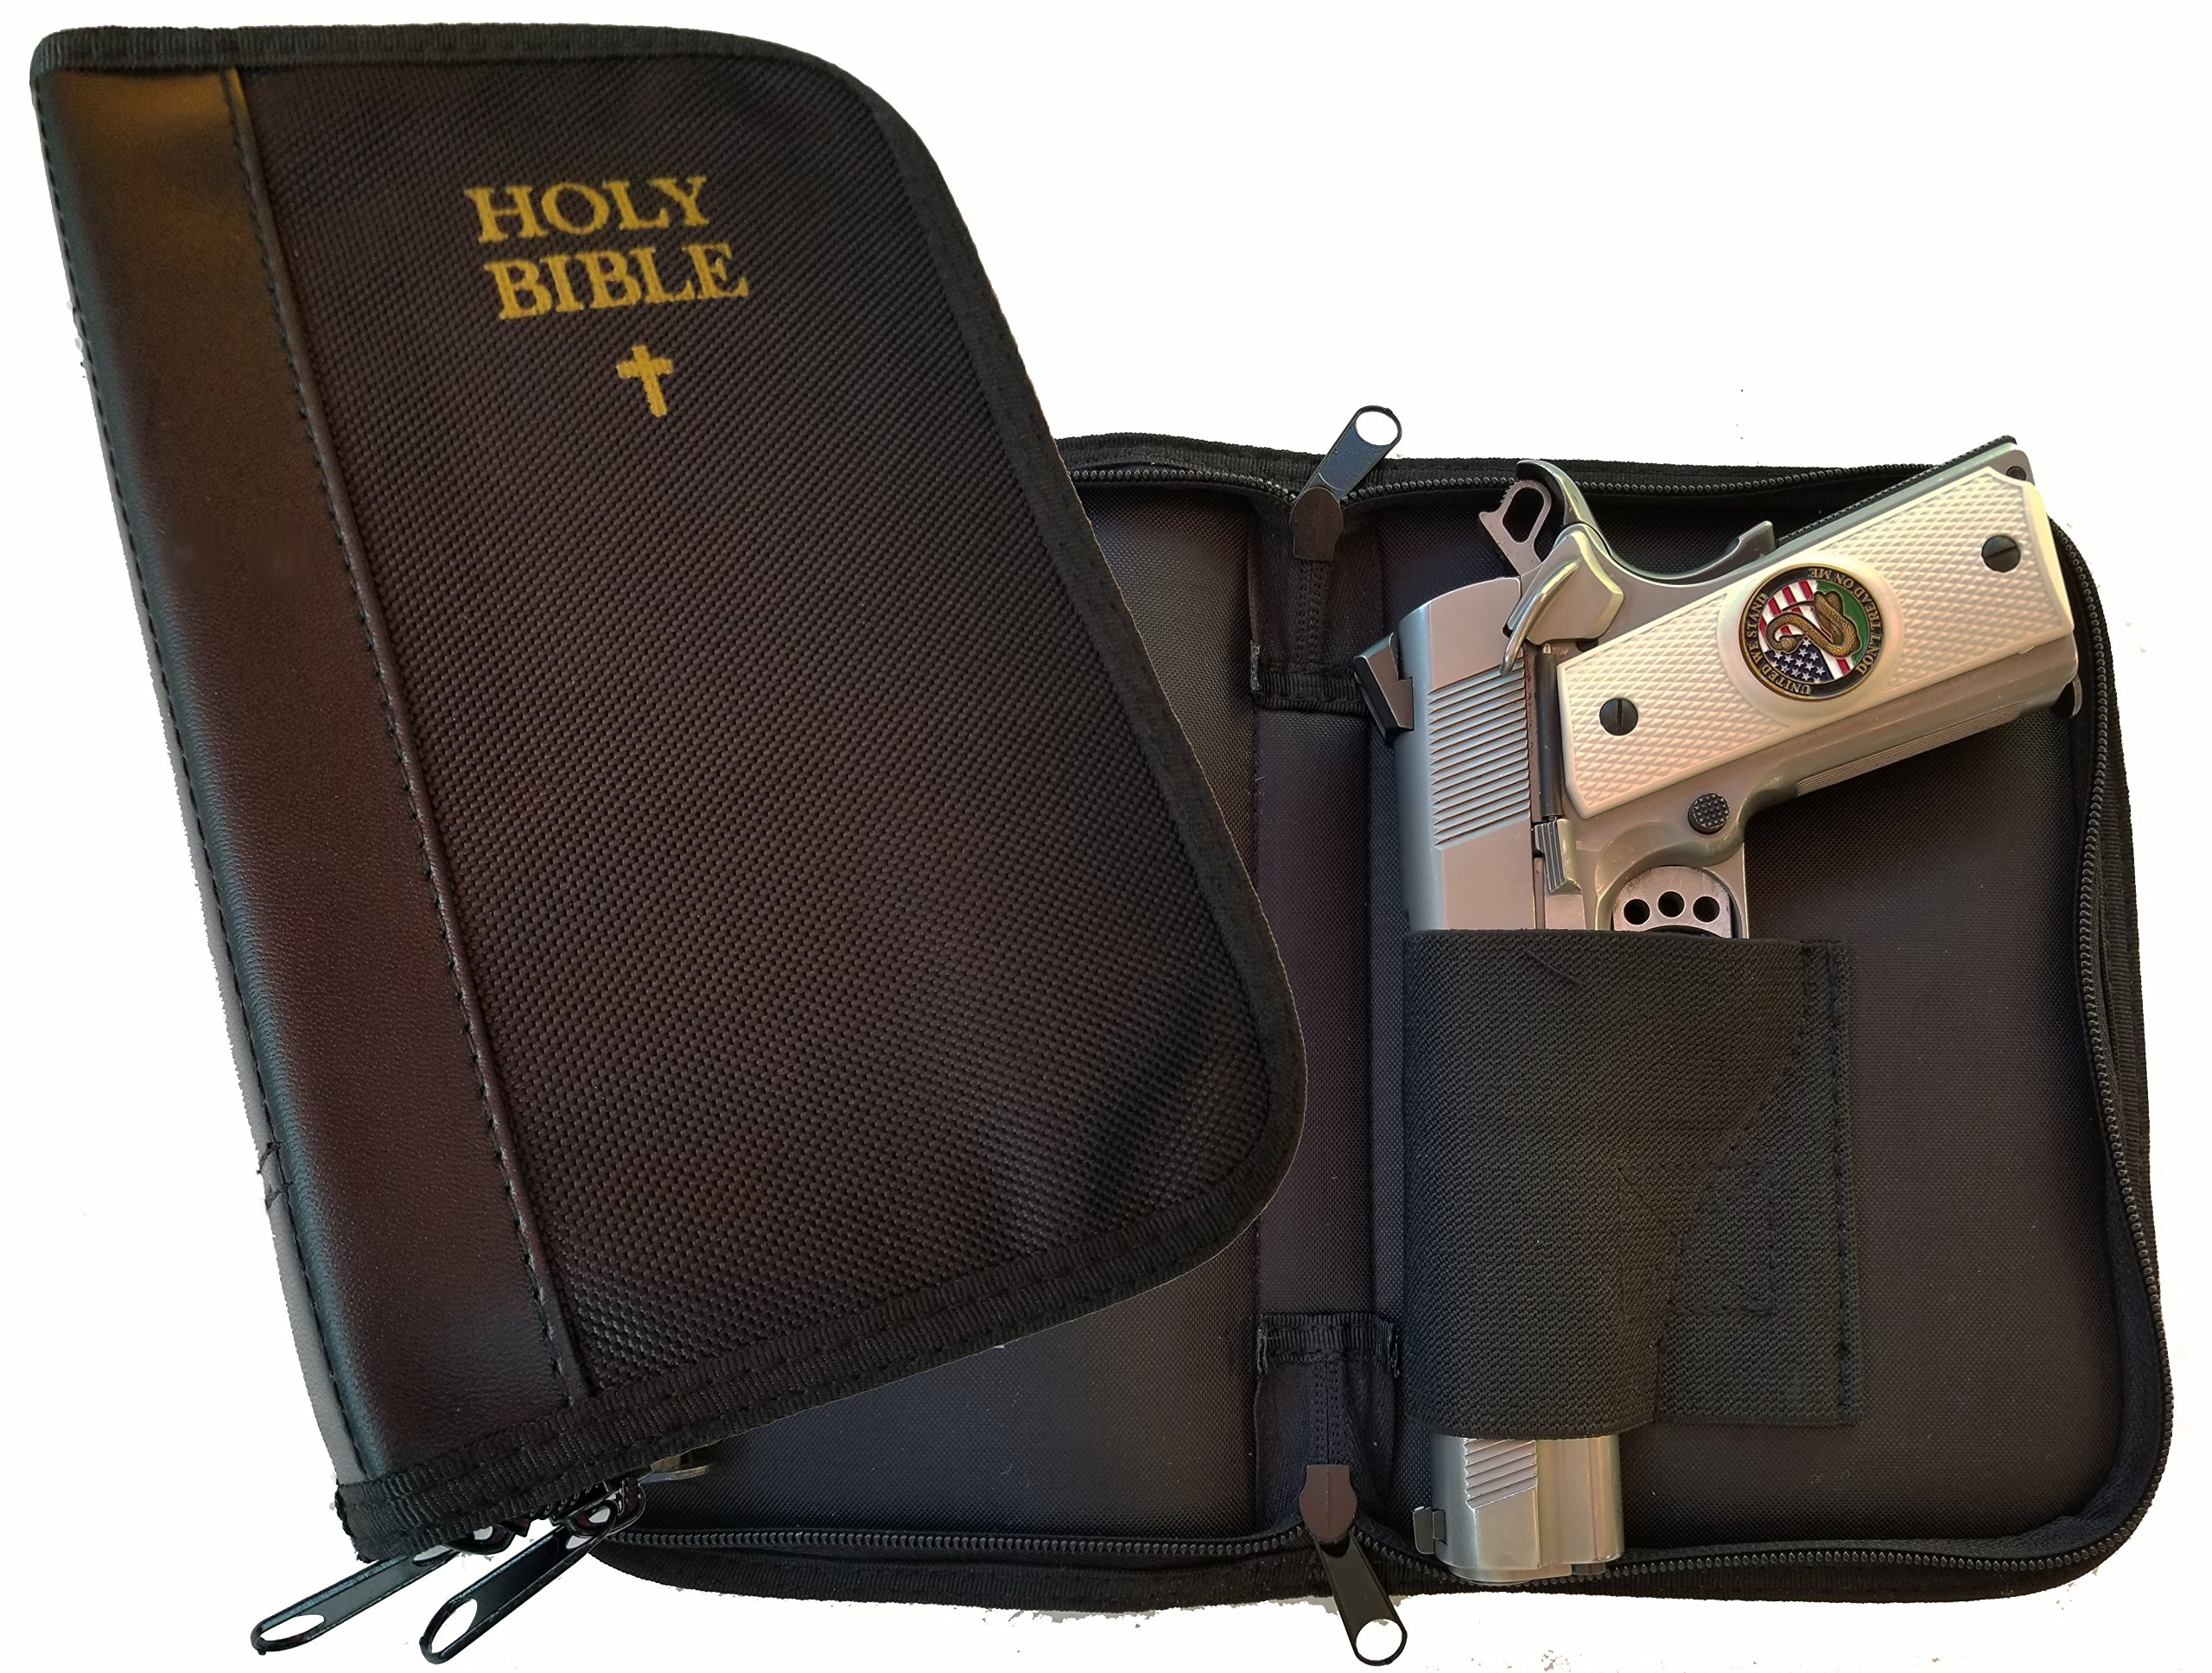 Garrison Grip Faux Leather Bound Bible Gun Case For Concealed Carry Or Bookshelf With Gold Leaf Lettering for Large to Small Sized Guns